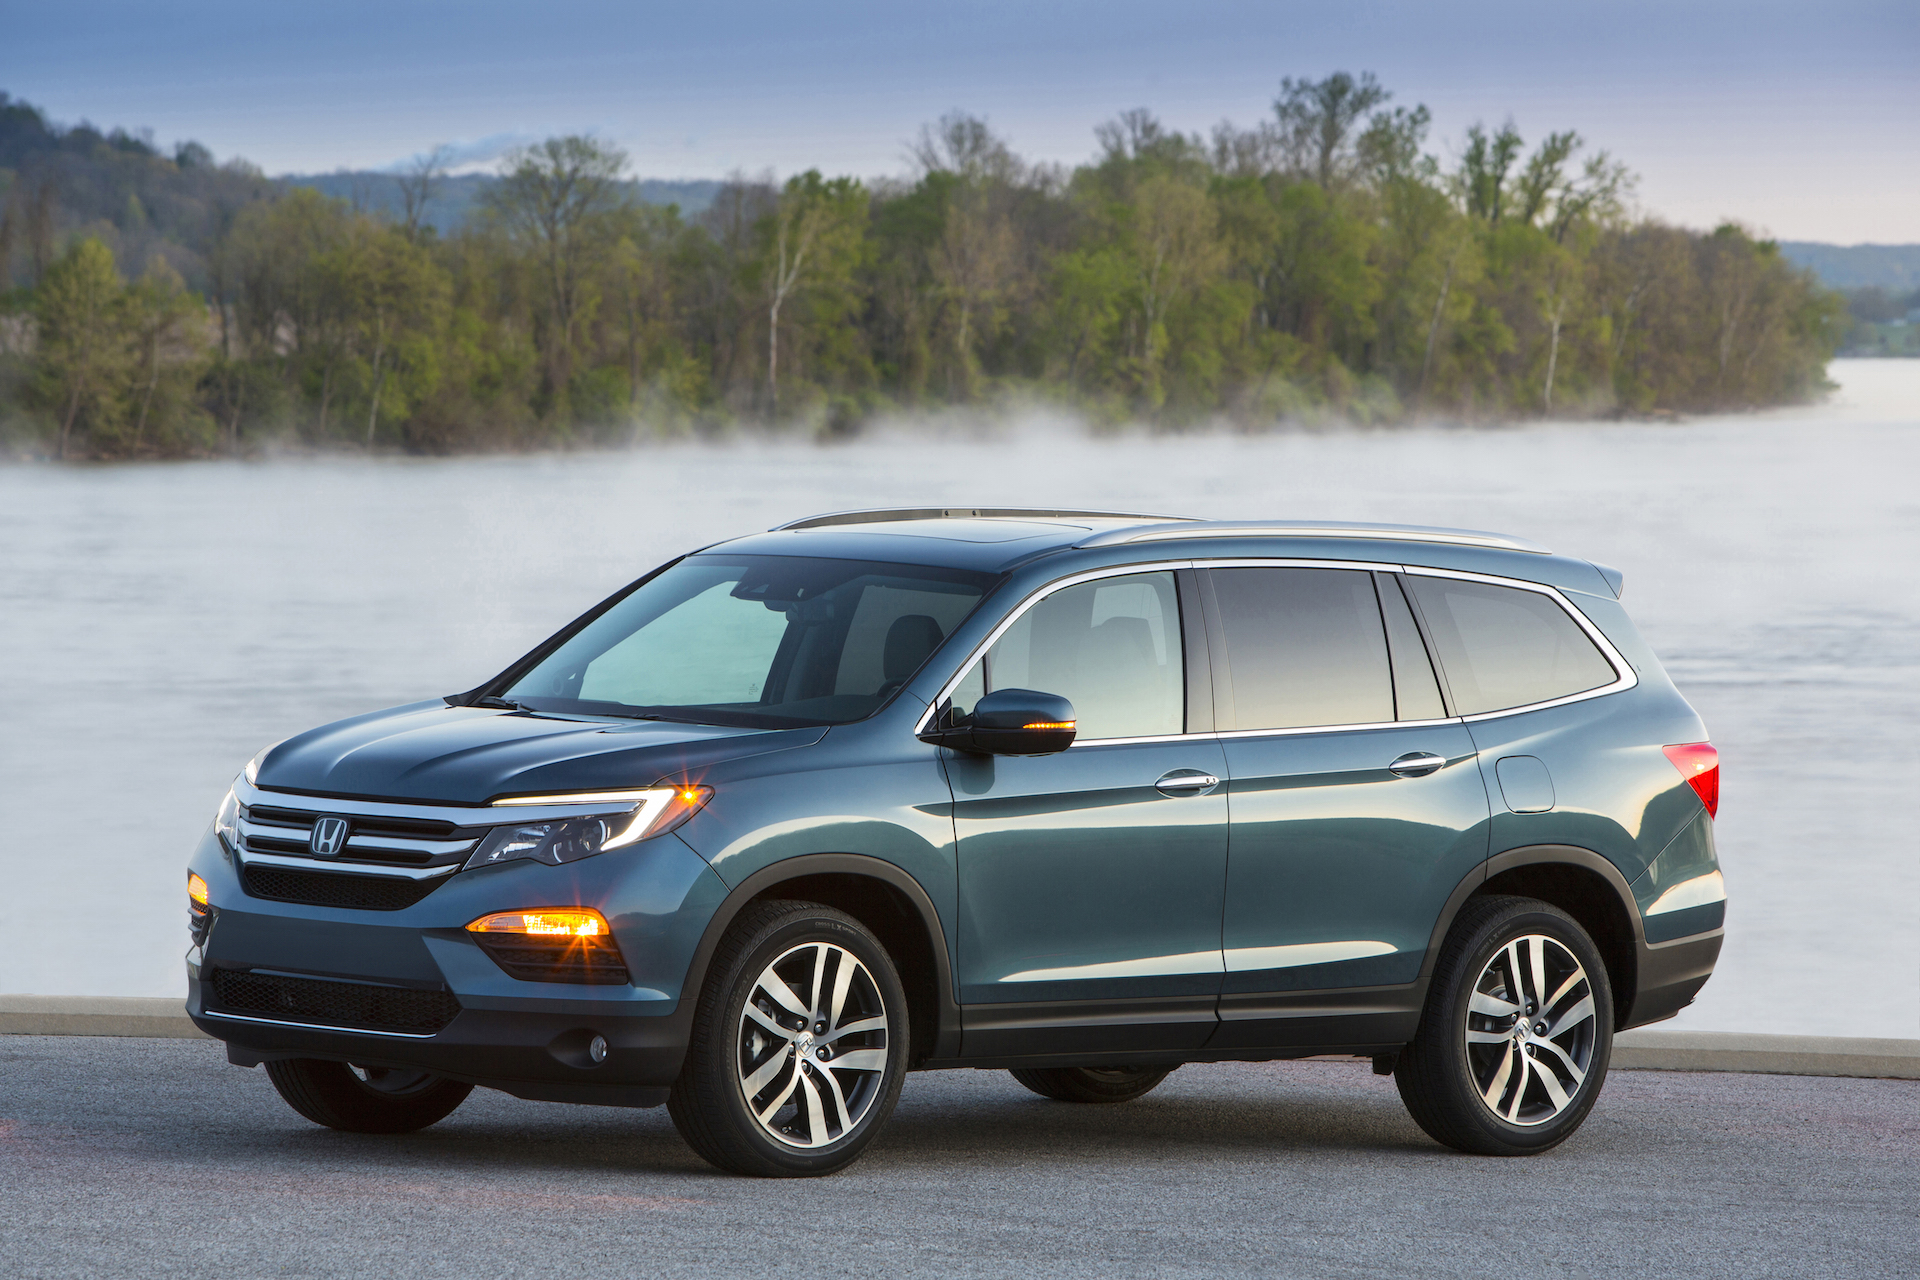 Honda pilot vs toyota highlander compare cars for Honda pilot images